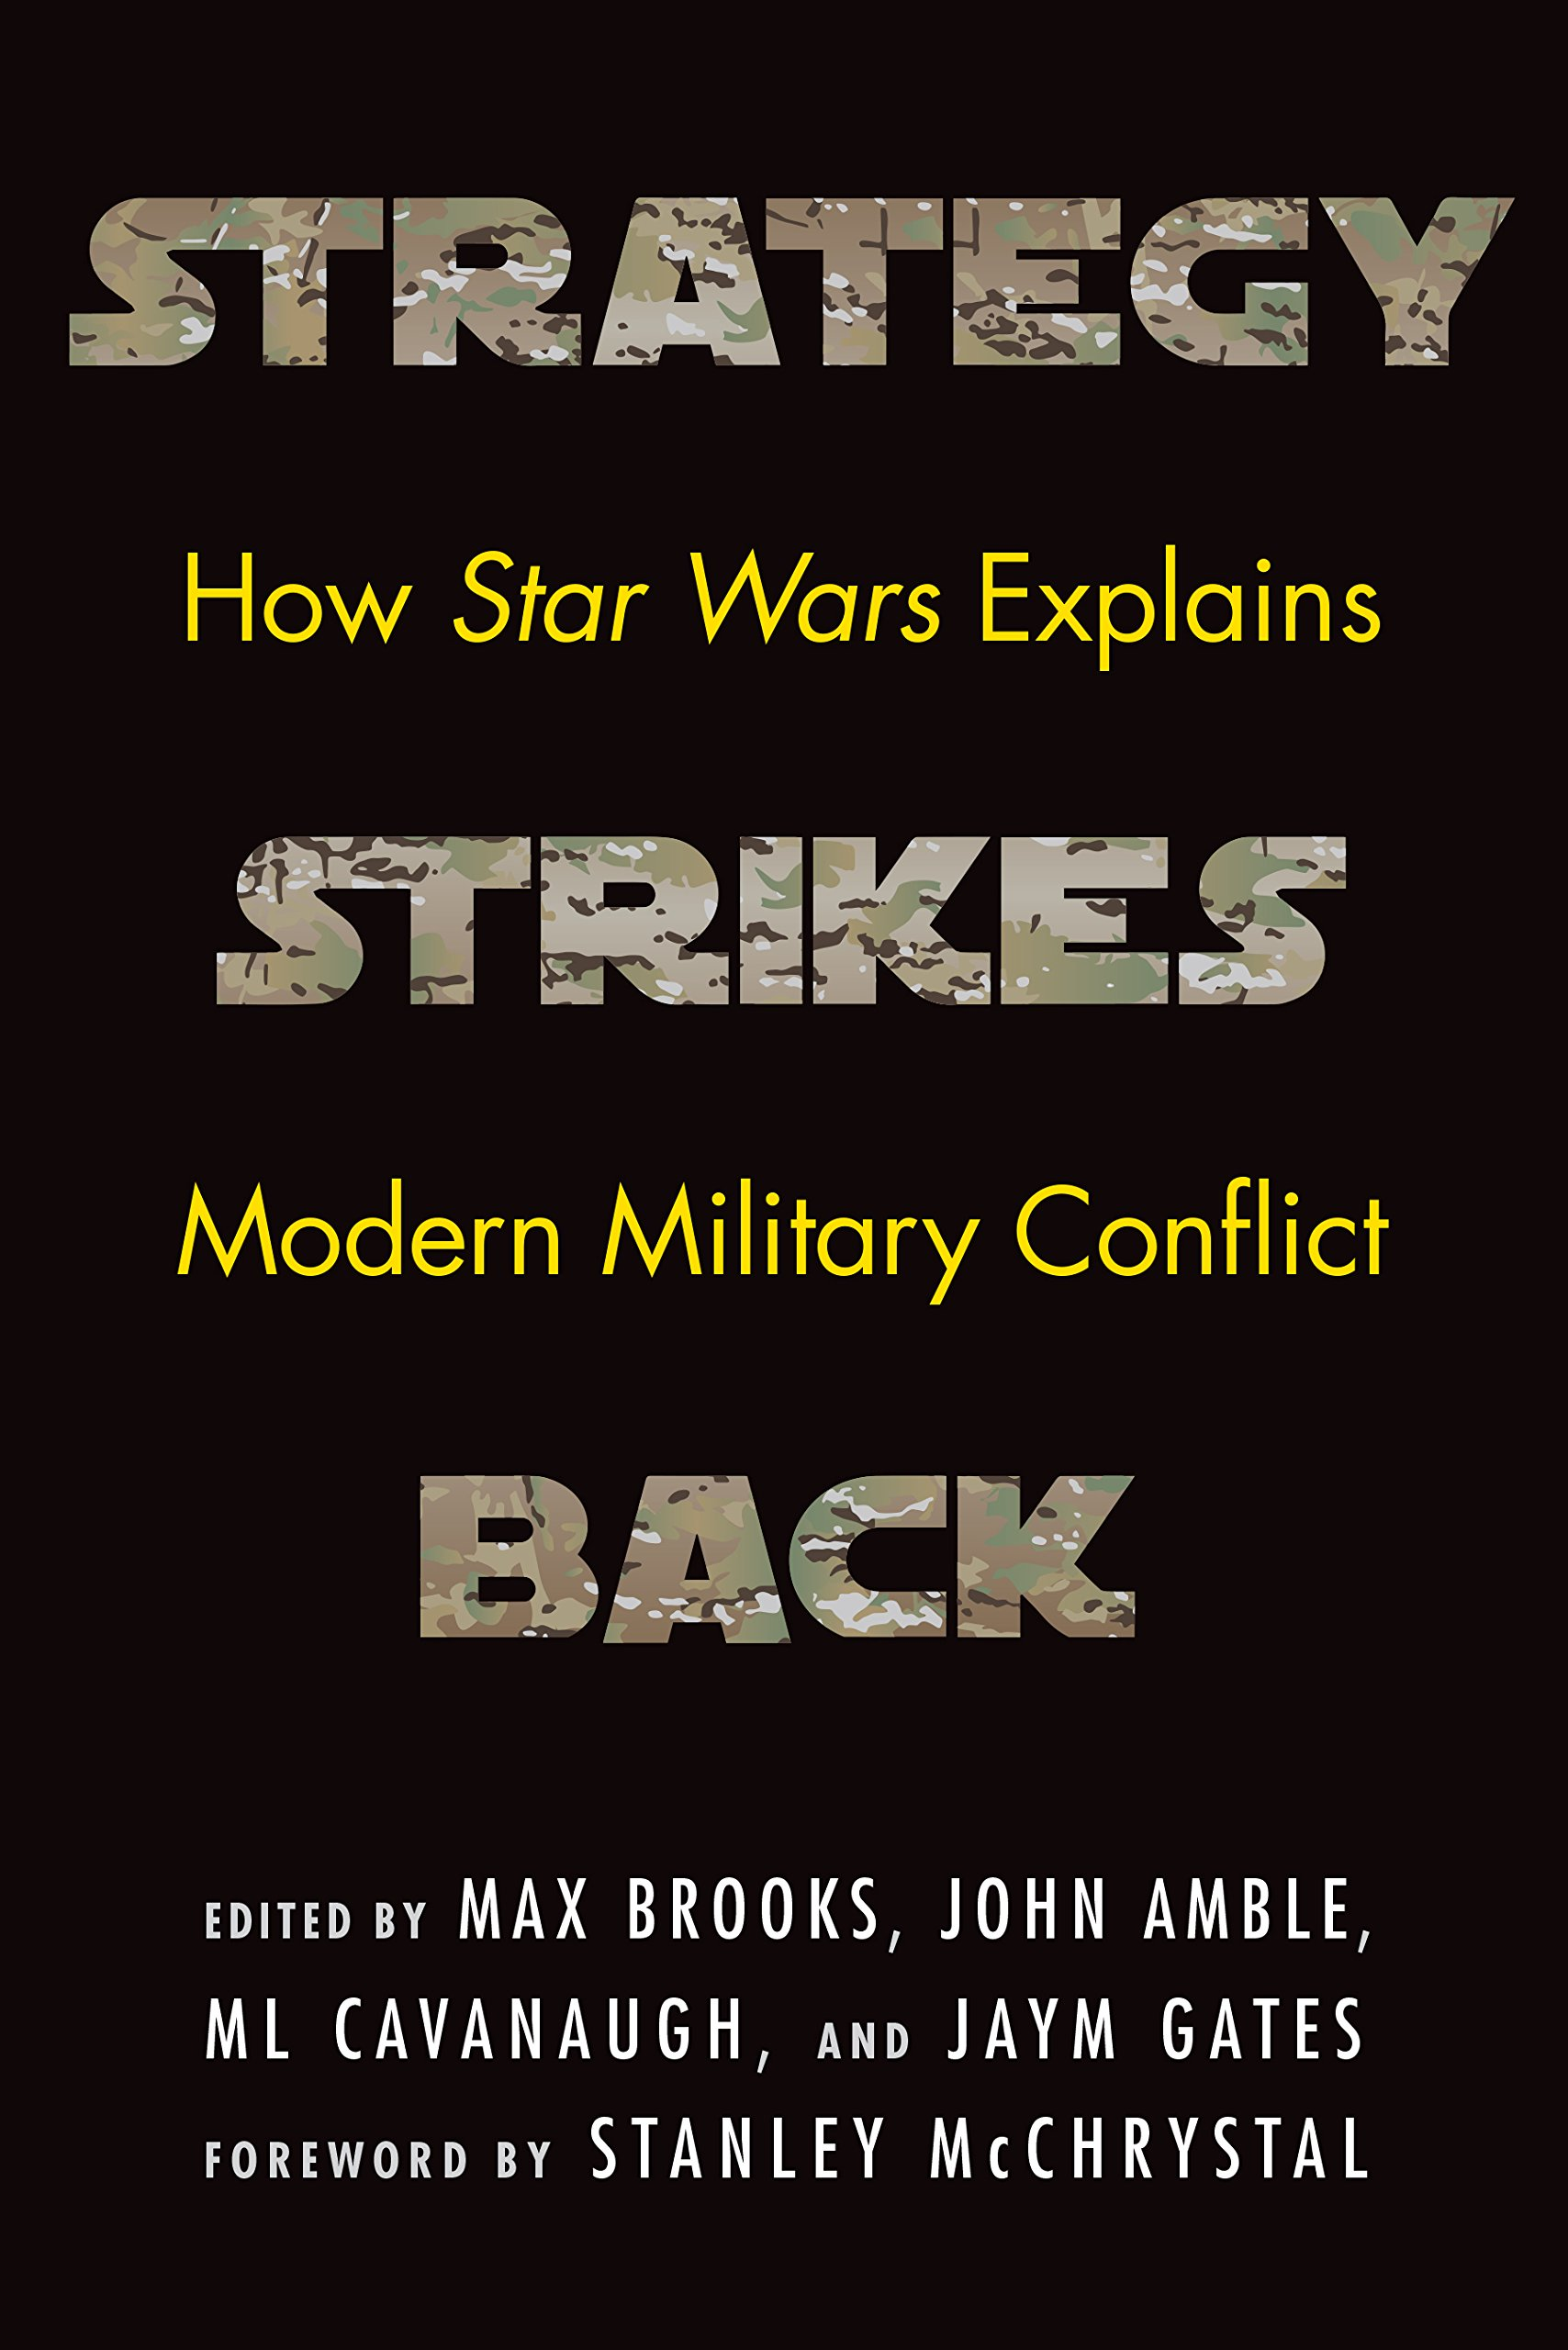 Darth Vader's Failed Counterinsurgency Strategy